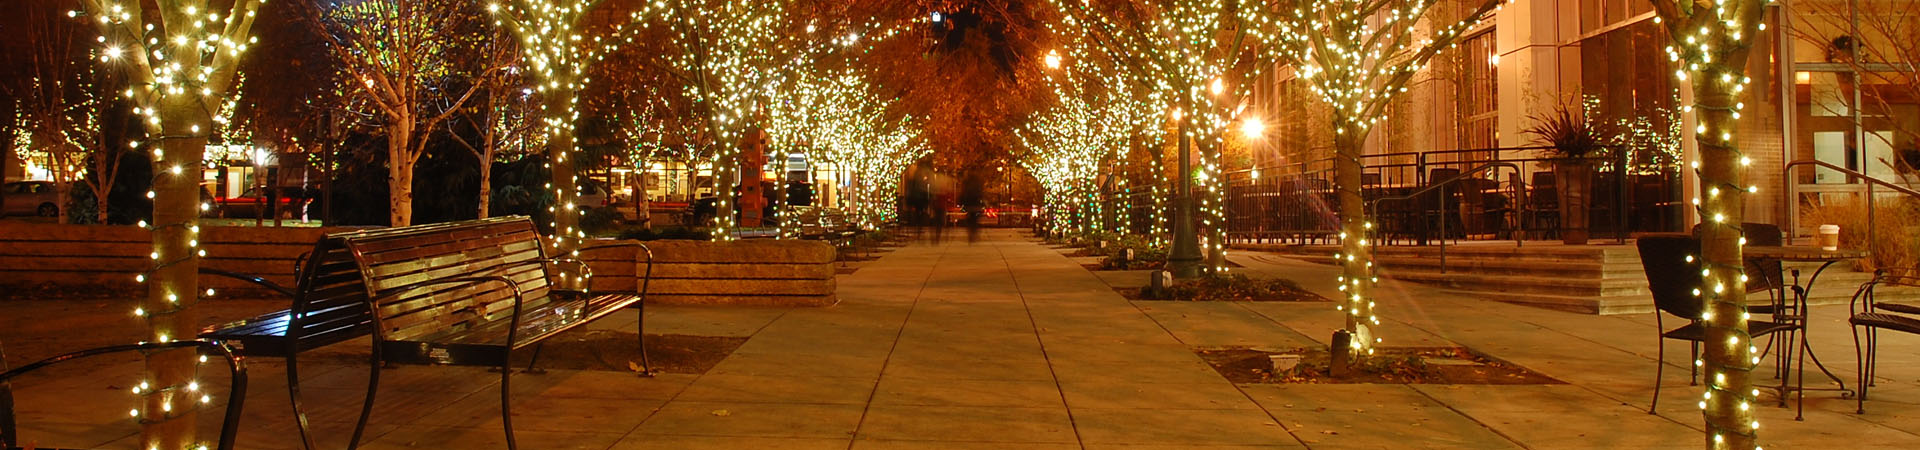 holiday lighting installation a great choice